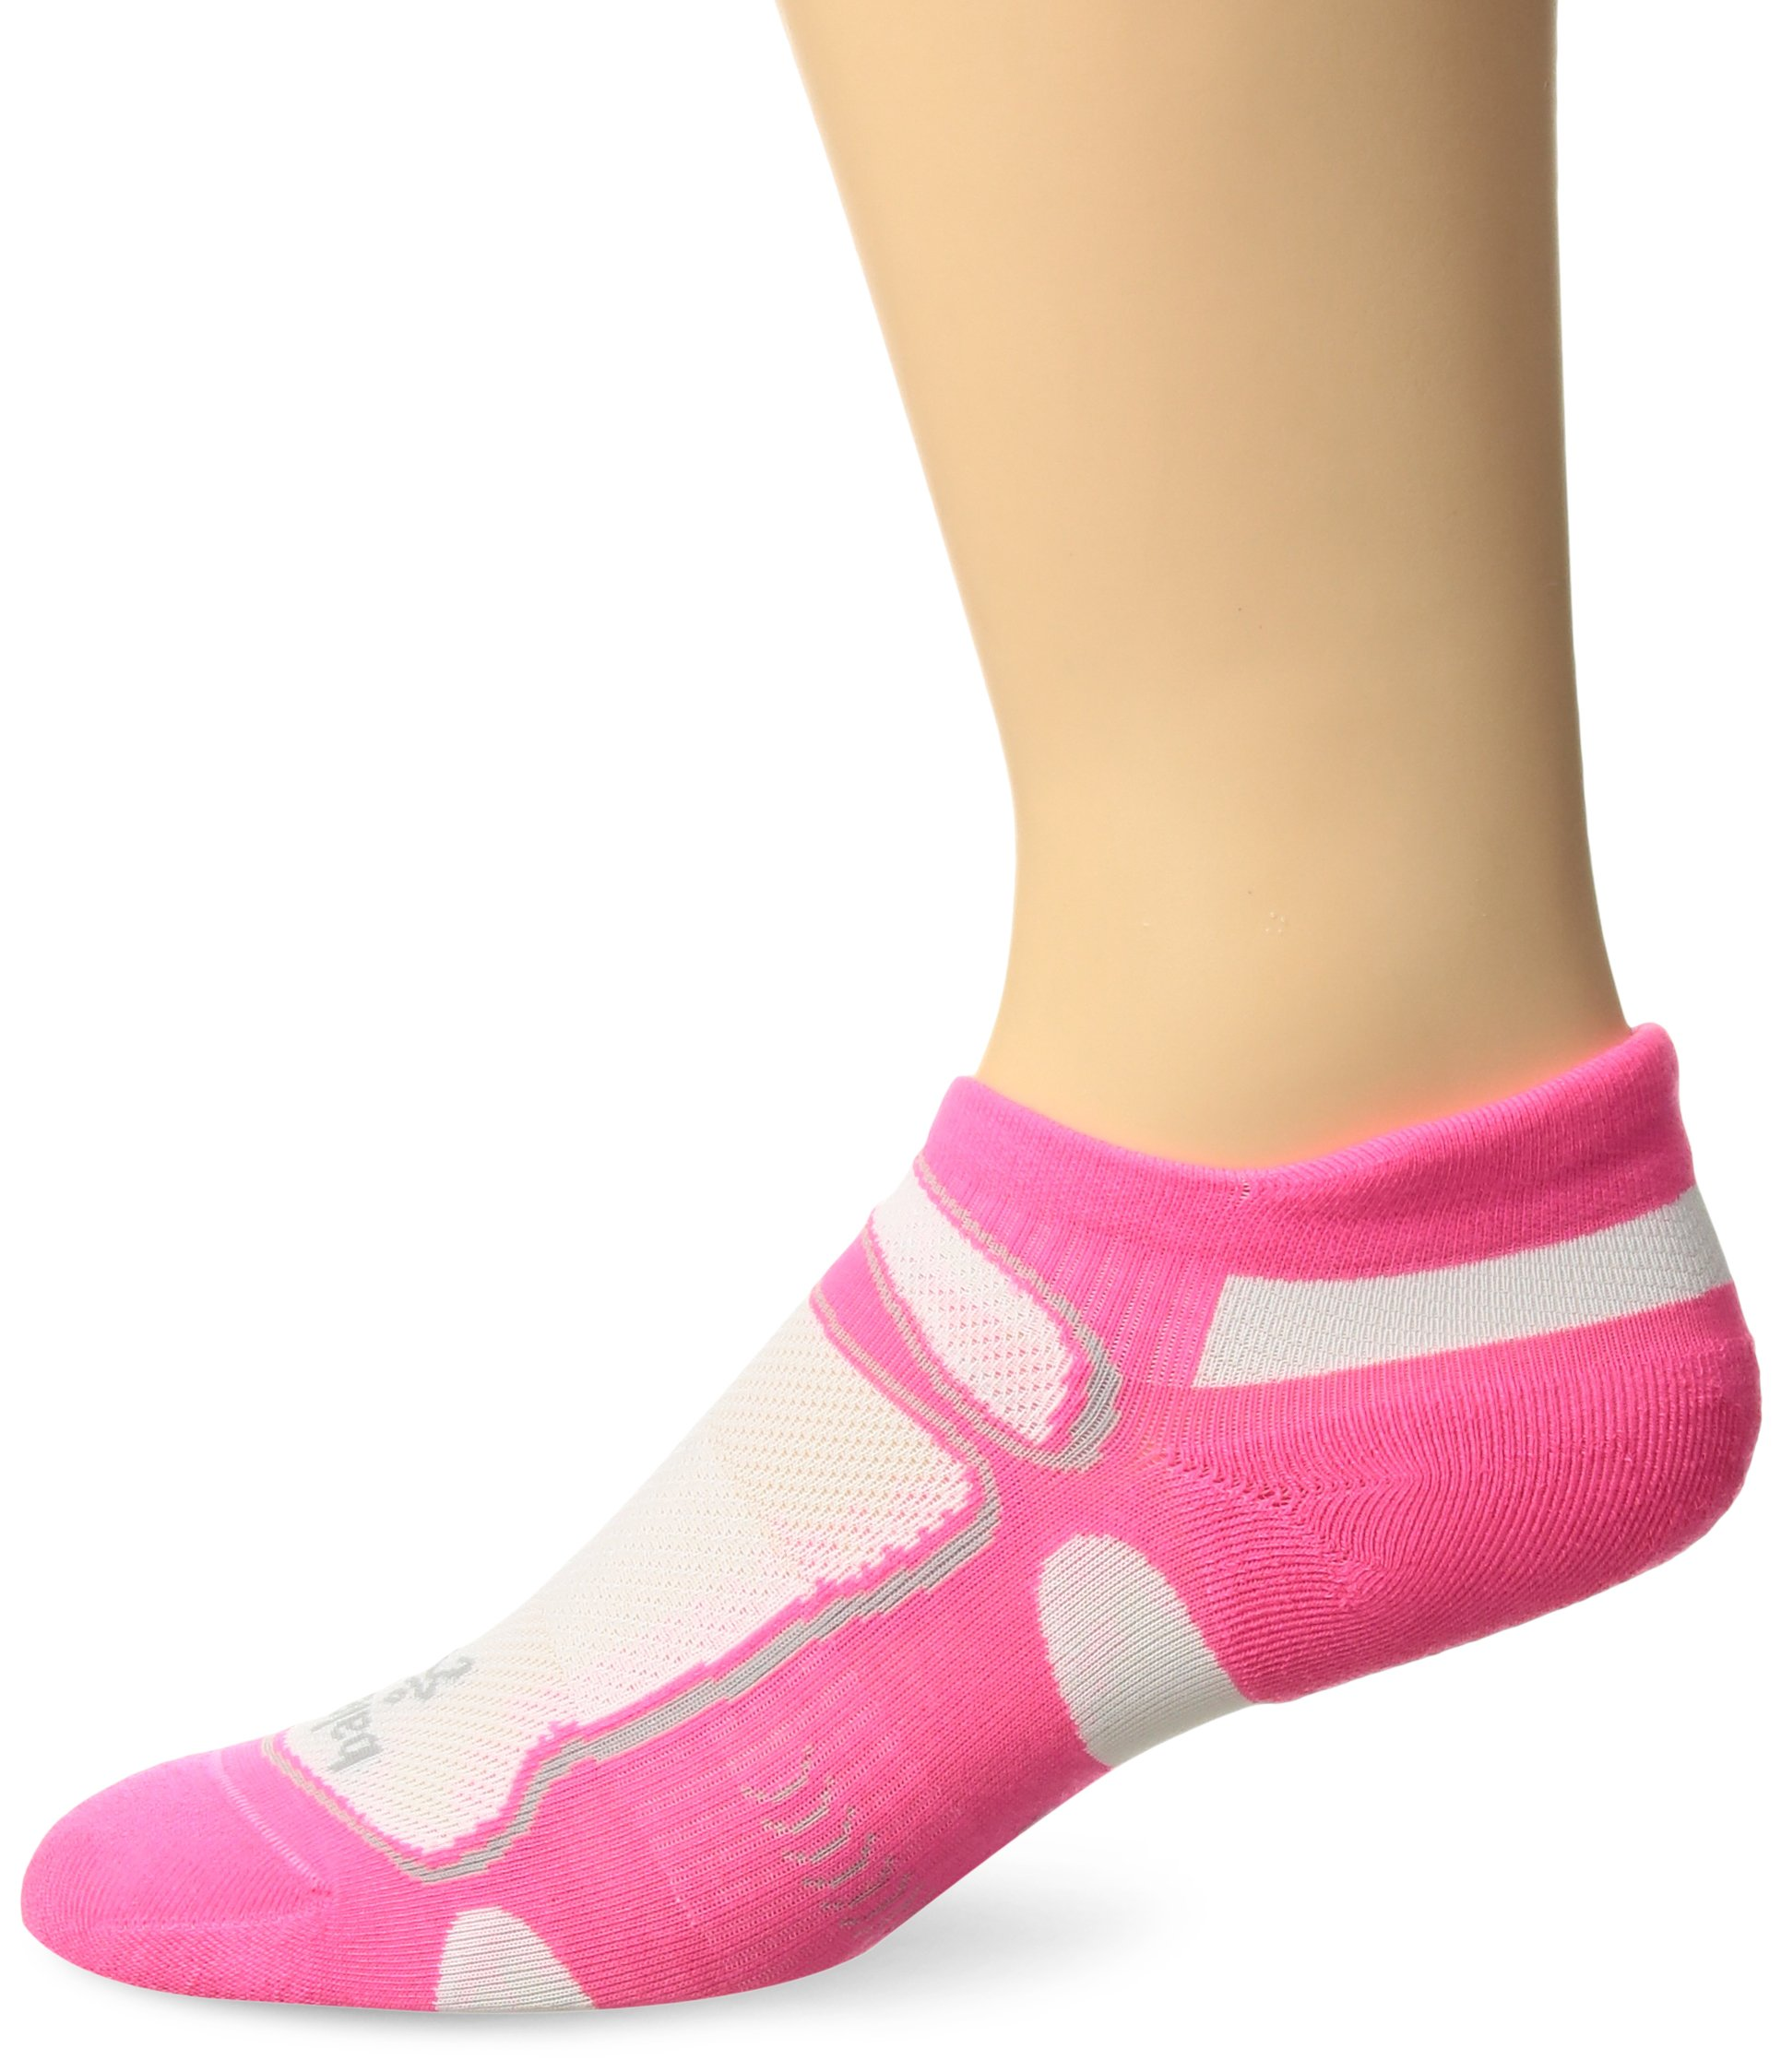 Balega Ultralight No Show Athletic Running Socks for Men and Women (1-Pair), Watermelon, Medium